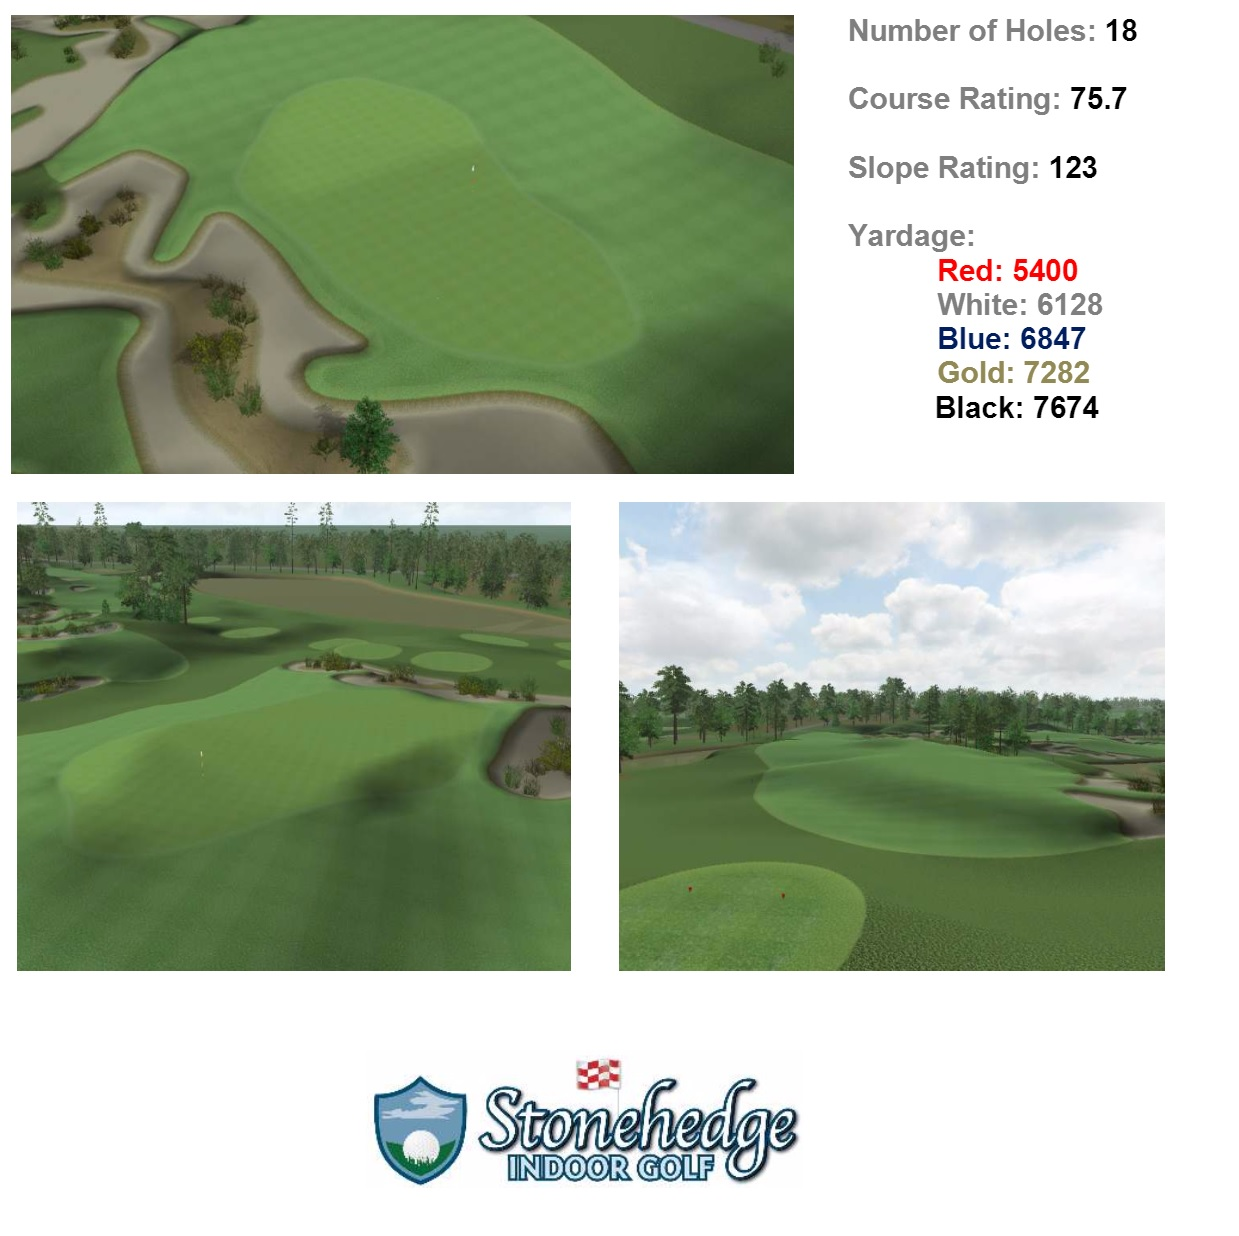 Available Golf Courses - Stonehedge Indoor Golf